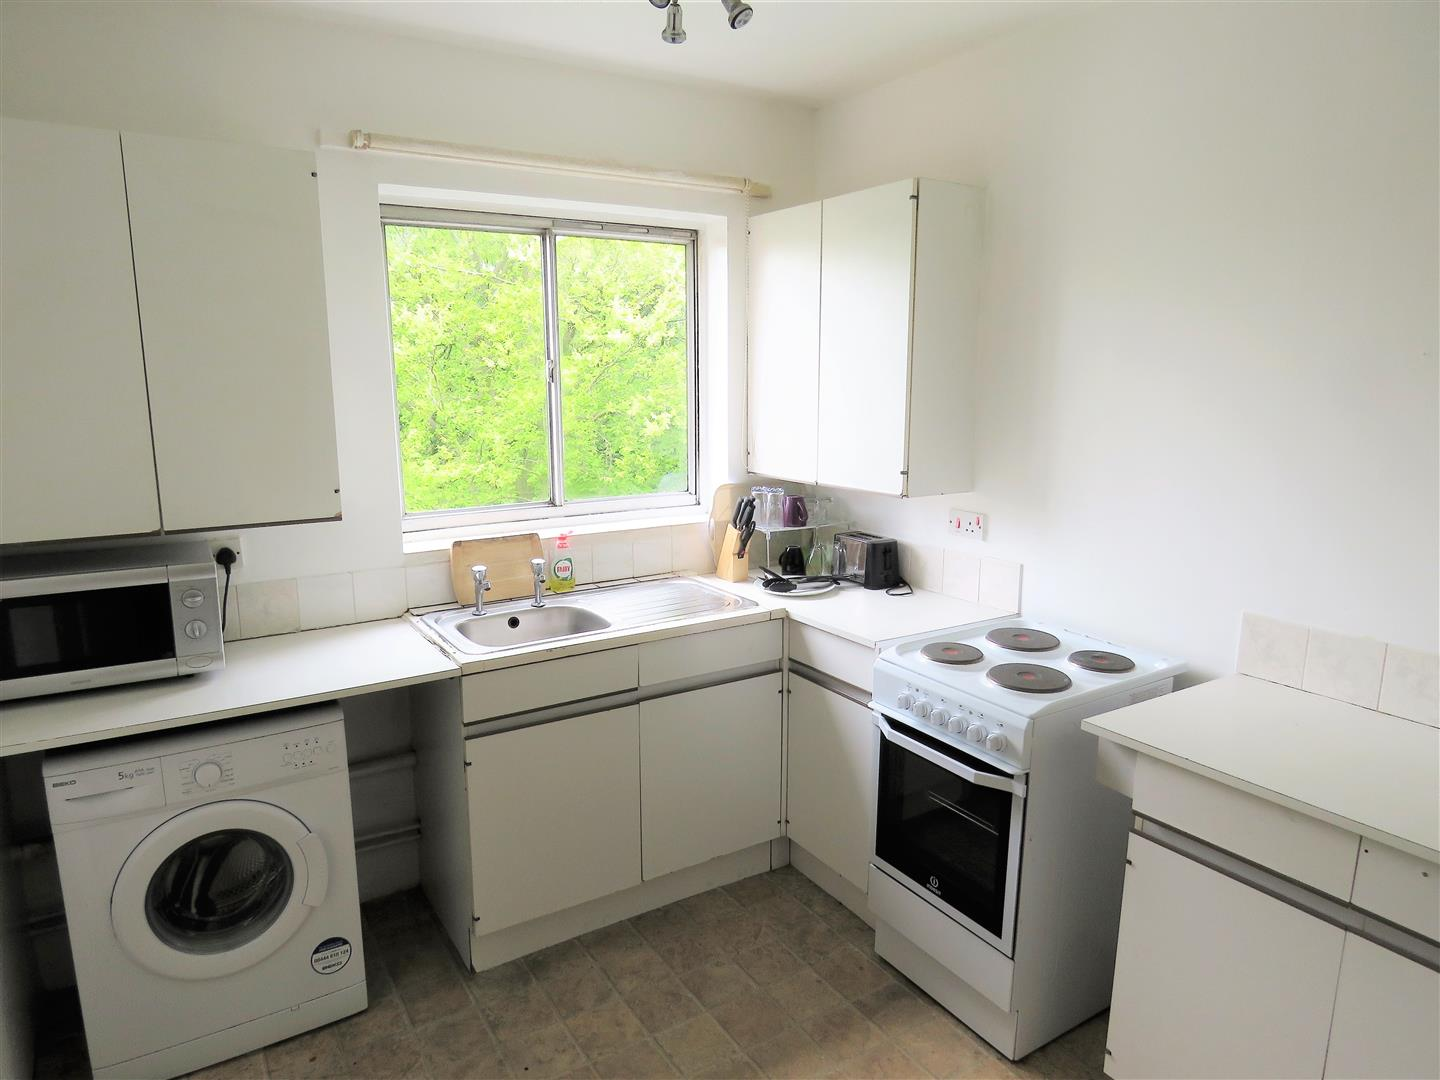 Flat 18 Hallam Cliffe 32 Crabtree Lane Norwood Sheffield